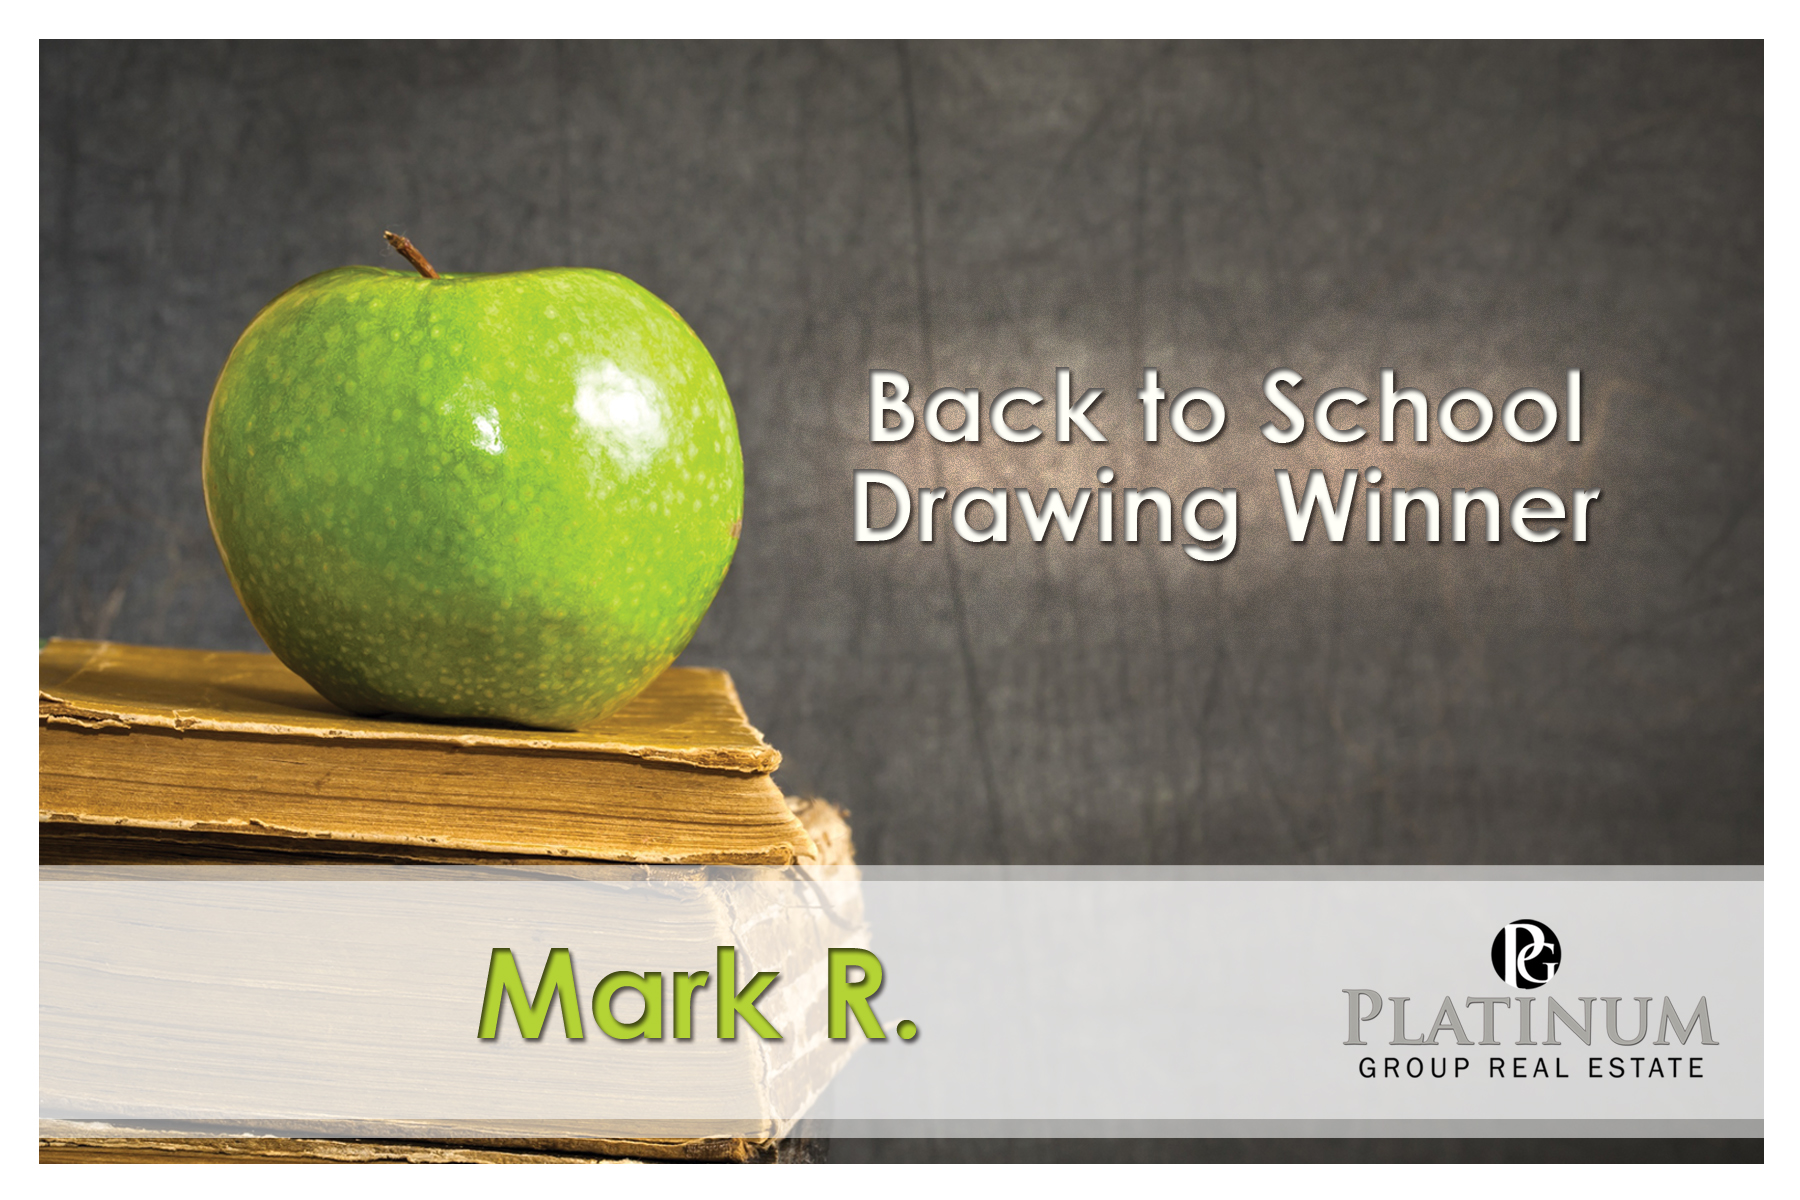 Back to School Drawing Winner